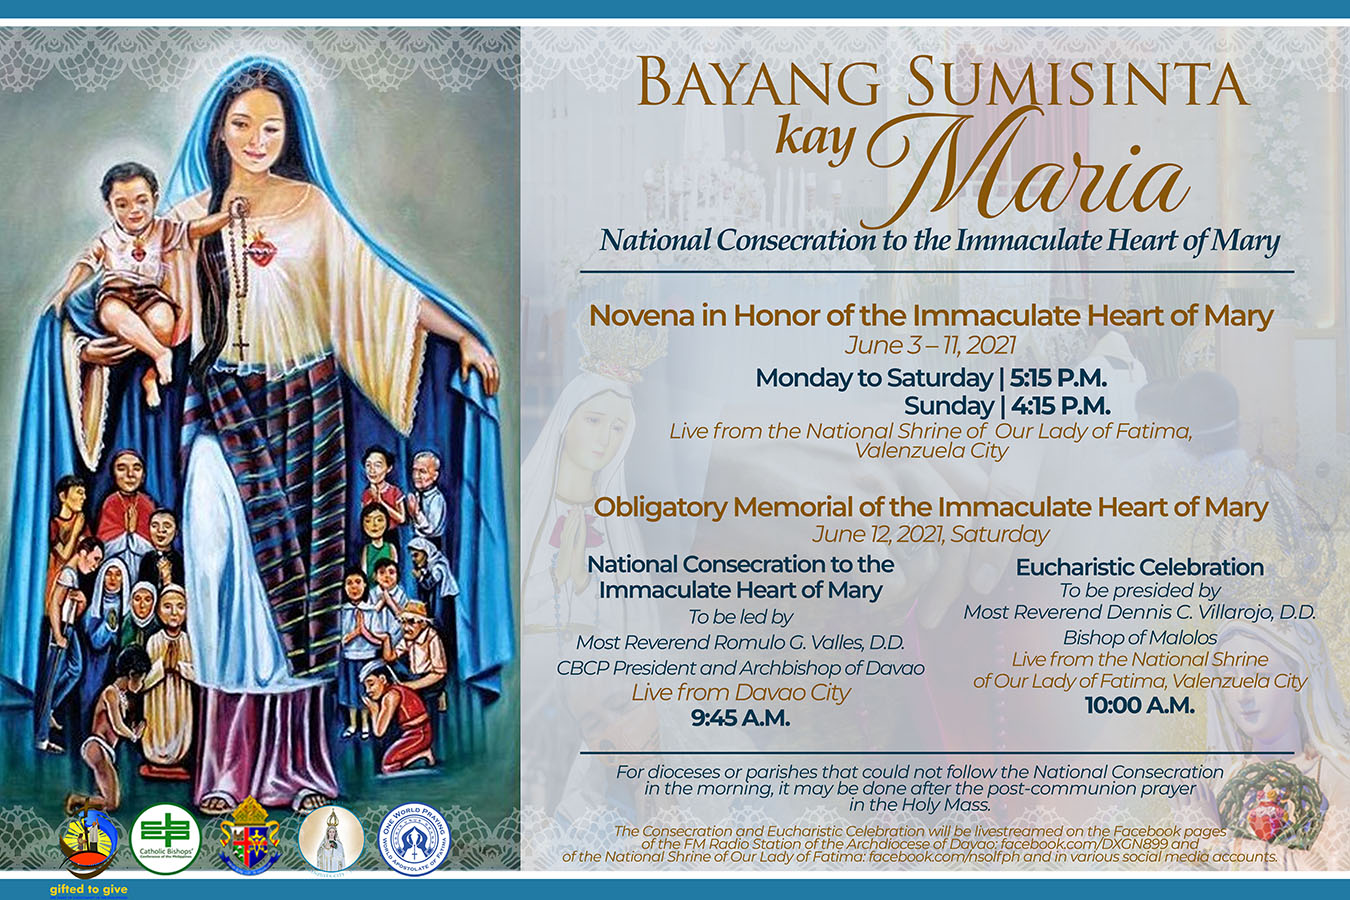 CBCP releases prayer for National Consecration to the Immaculate Heart of Mary